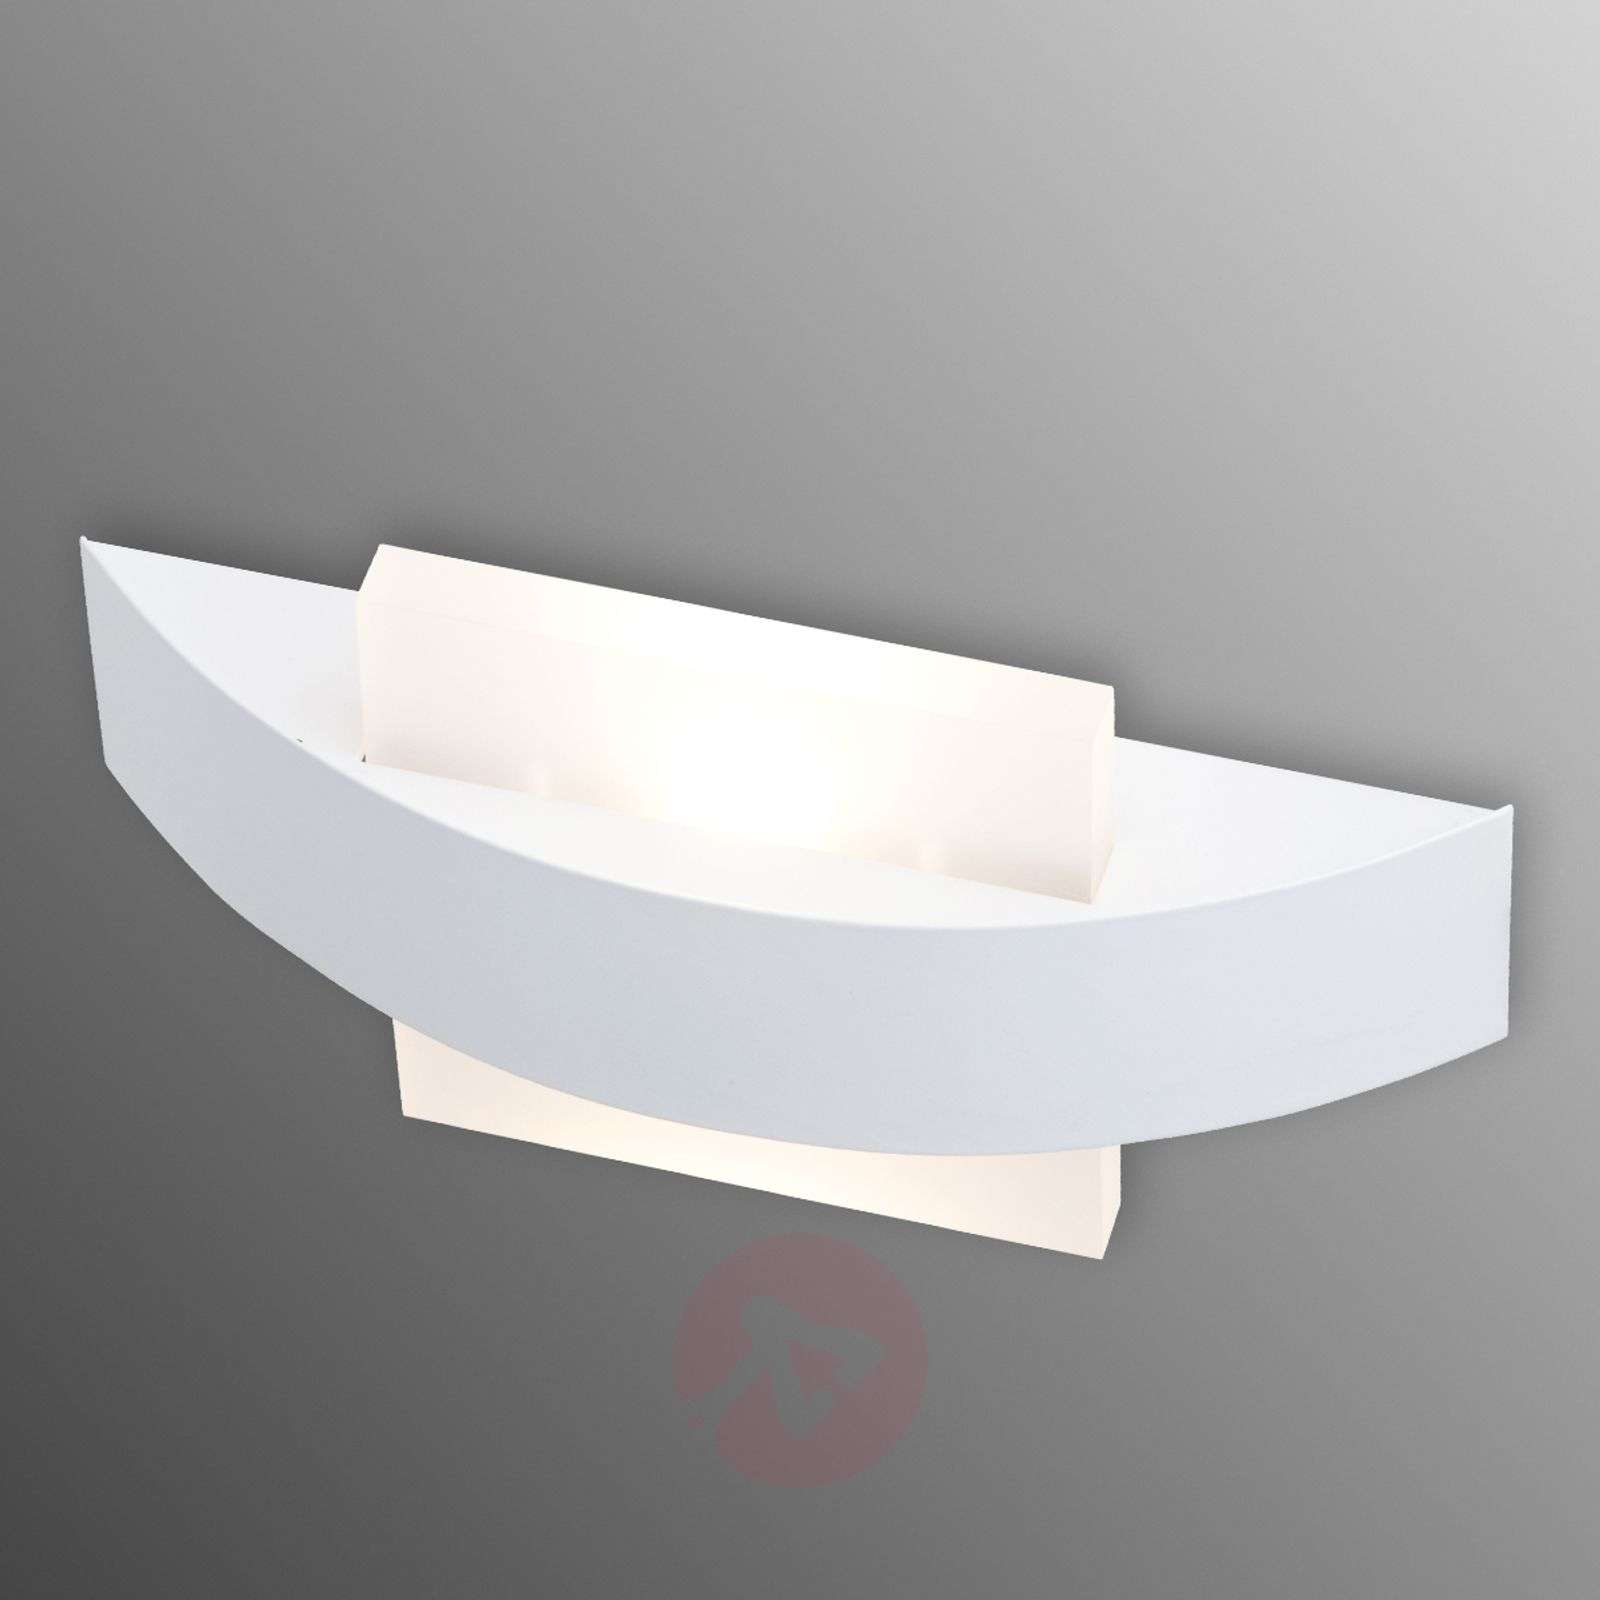 Solution LED wall light, square diffuser-1509033-01